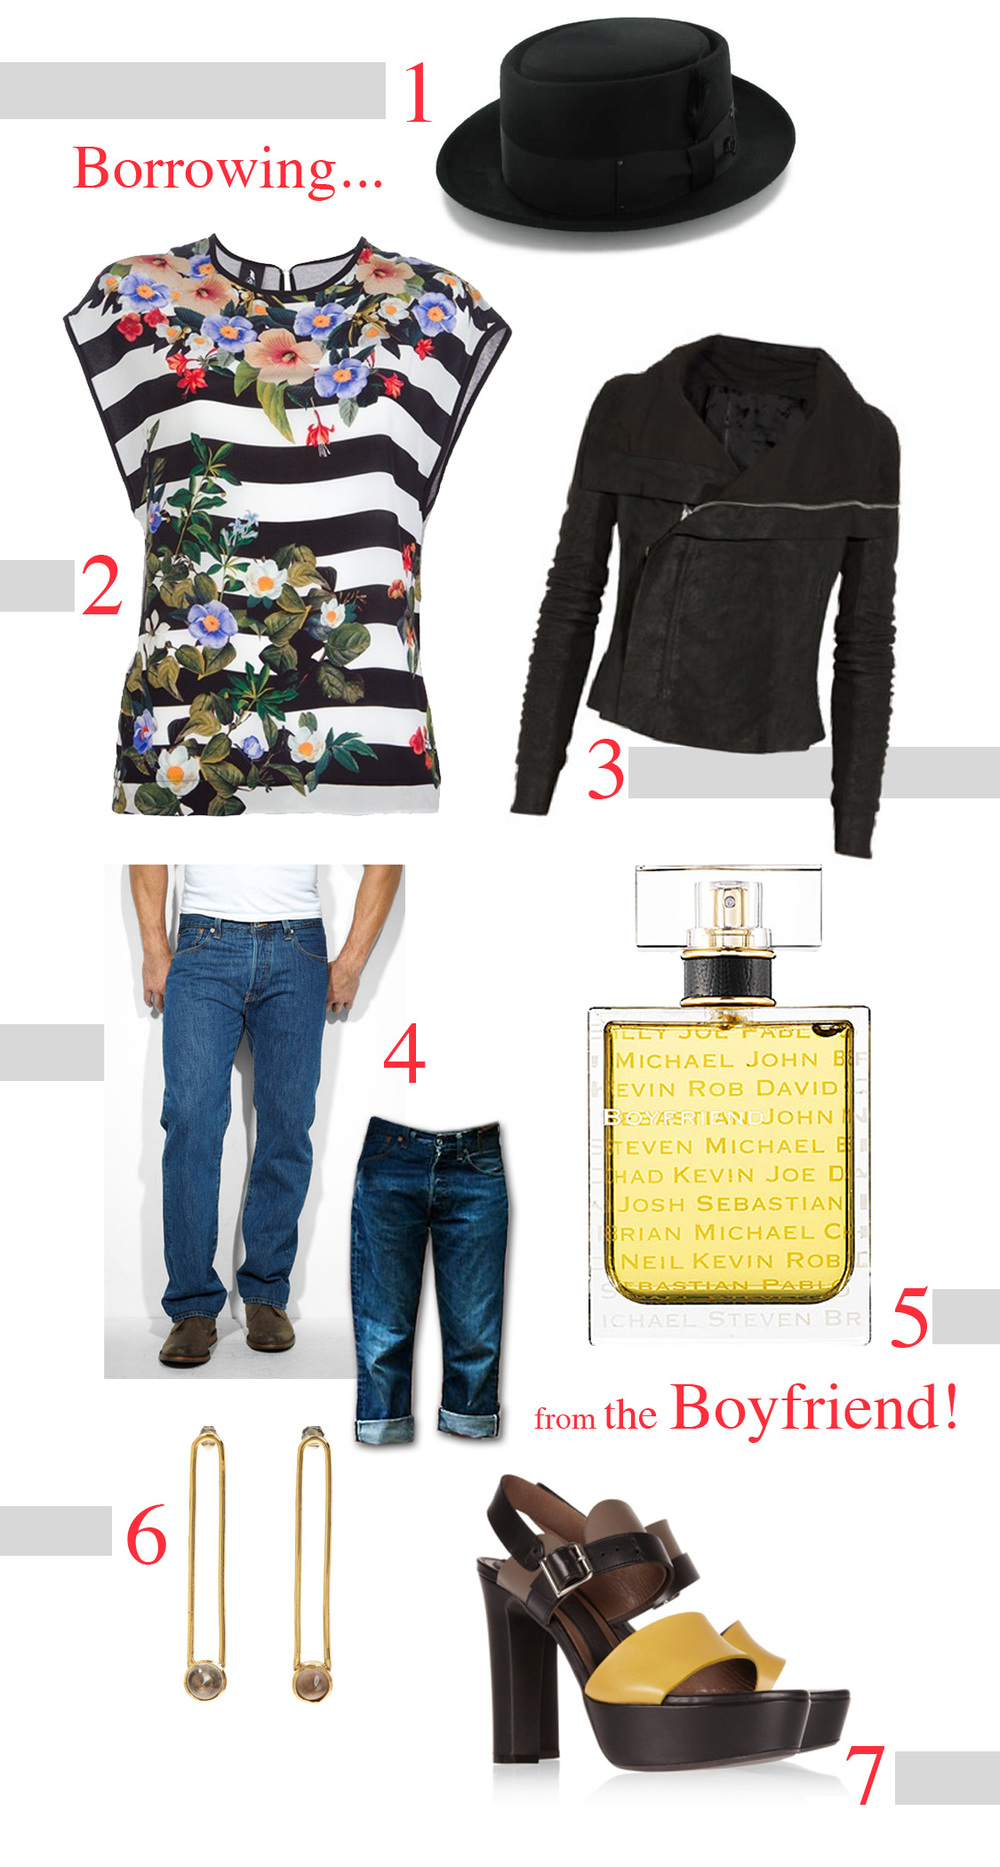 1.  'His' Black Felt Pork Pie Hat 2. Stripe Floral Top by Mother of Pearl 3. Rick Owens Leather Jacket 4. 'His' Levi's 501 jeans 5. Boyfriend Perfume 6. Aesa Quartz Earrings 7. Black / Yellow Marni leather platform sandals